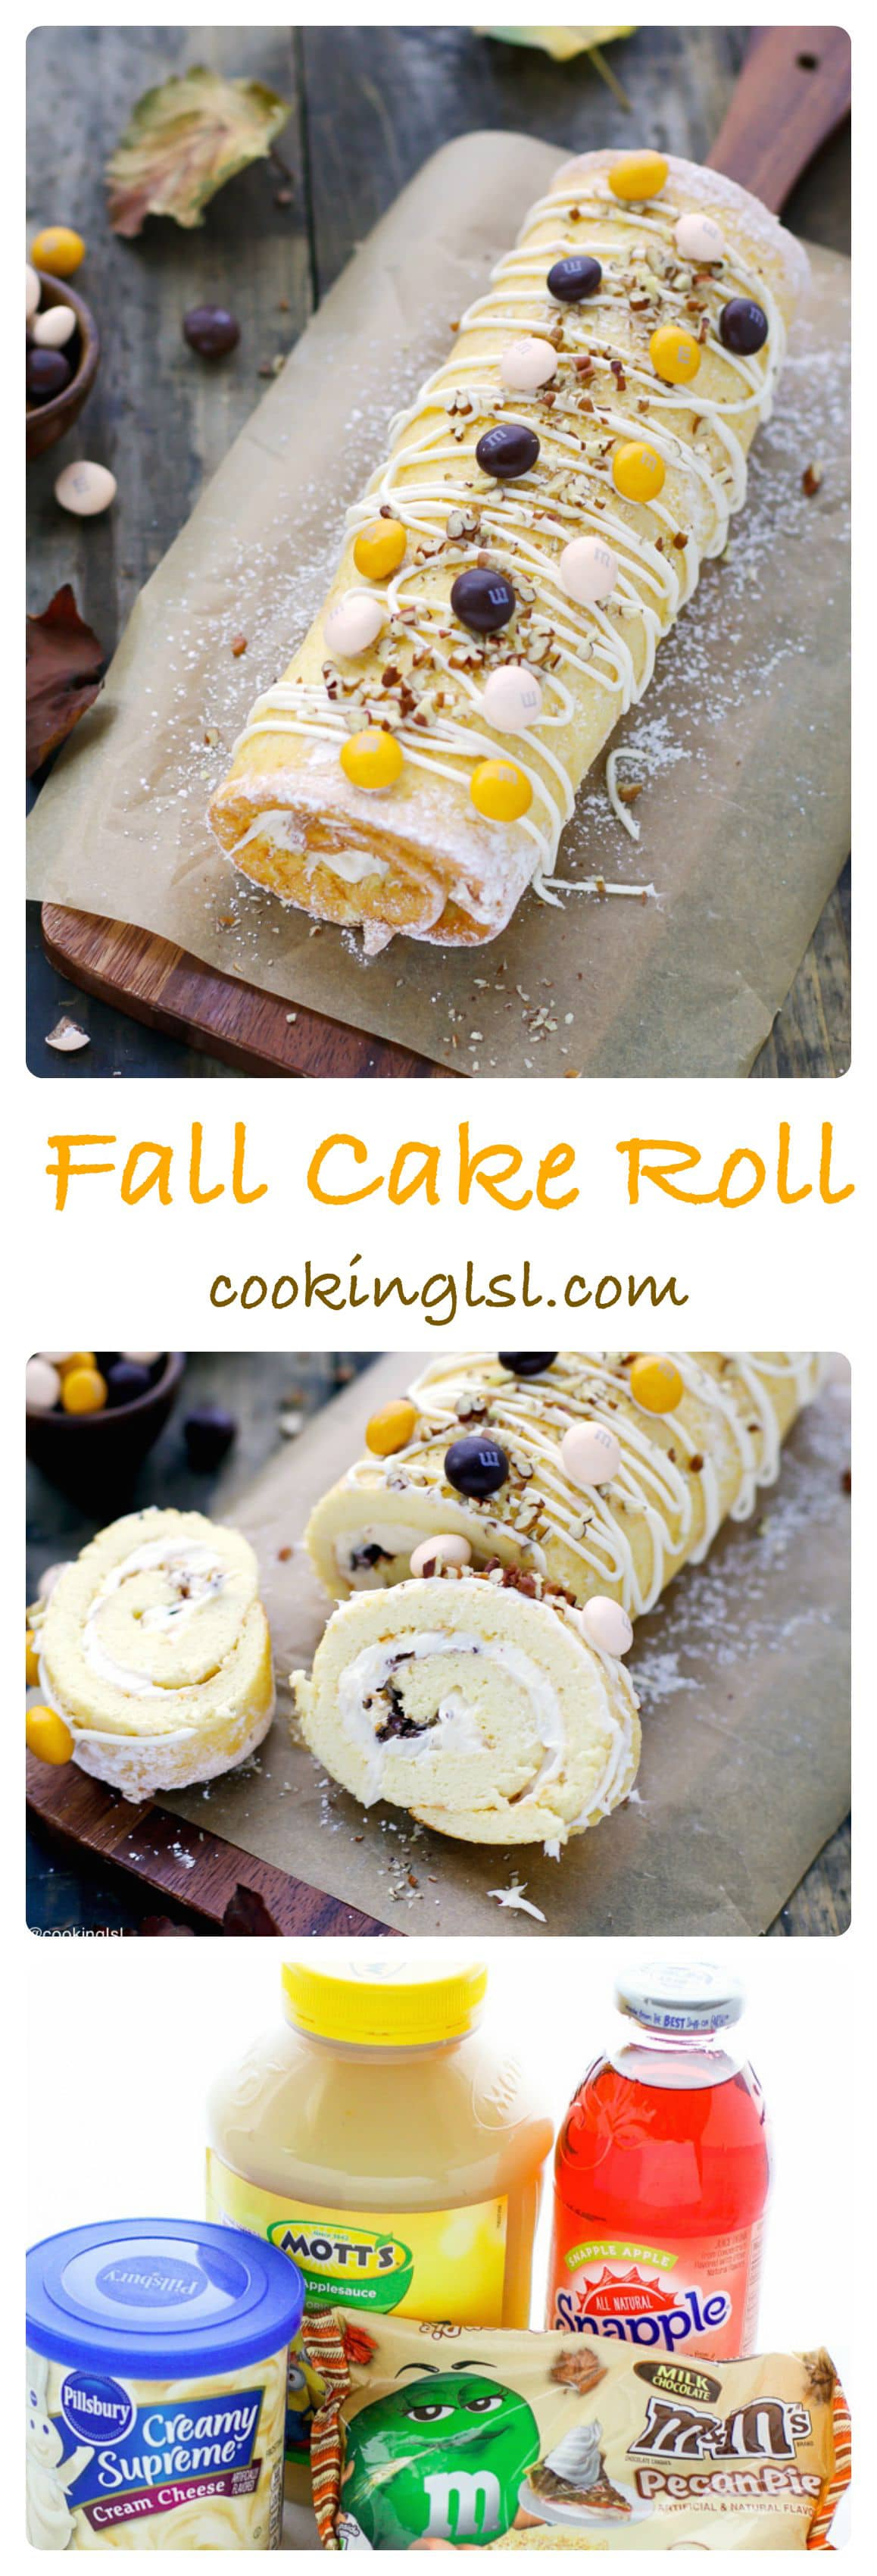 cake-roll-fall-M&M's-pecan-pie-candy